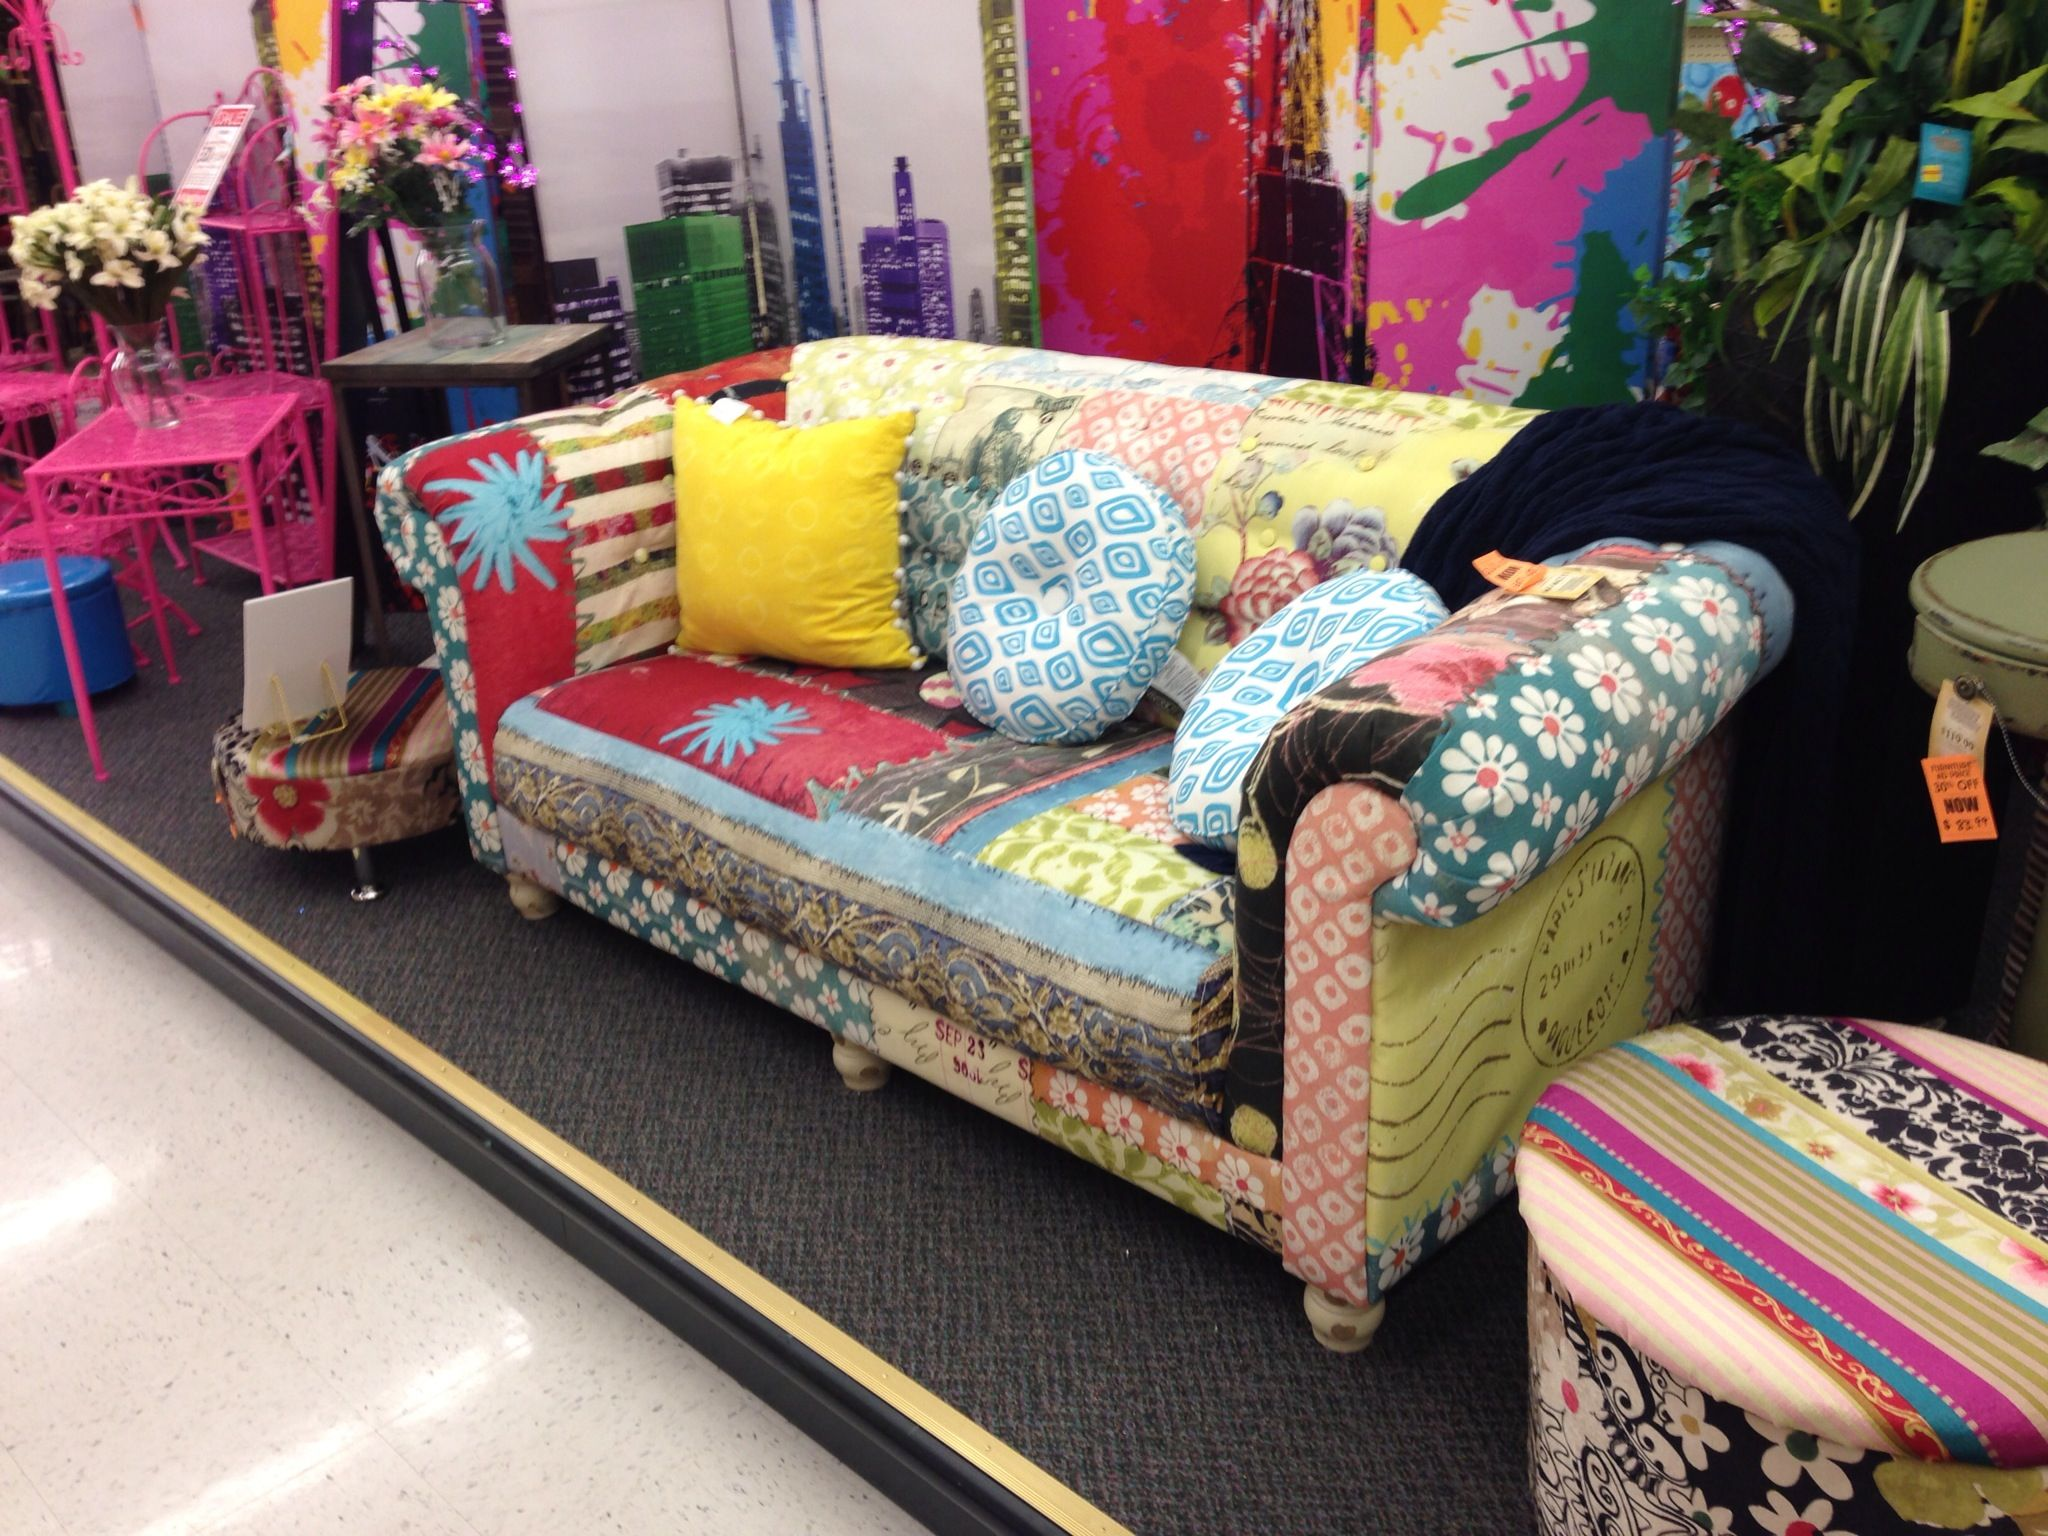 Nice Multicolored Couch From Hobby Lobby. My Daughter Fell In Love With These  Couches.